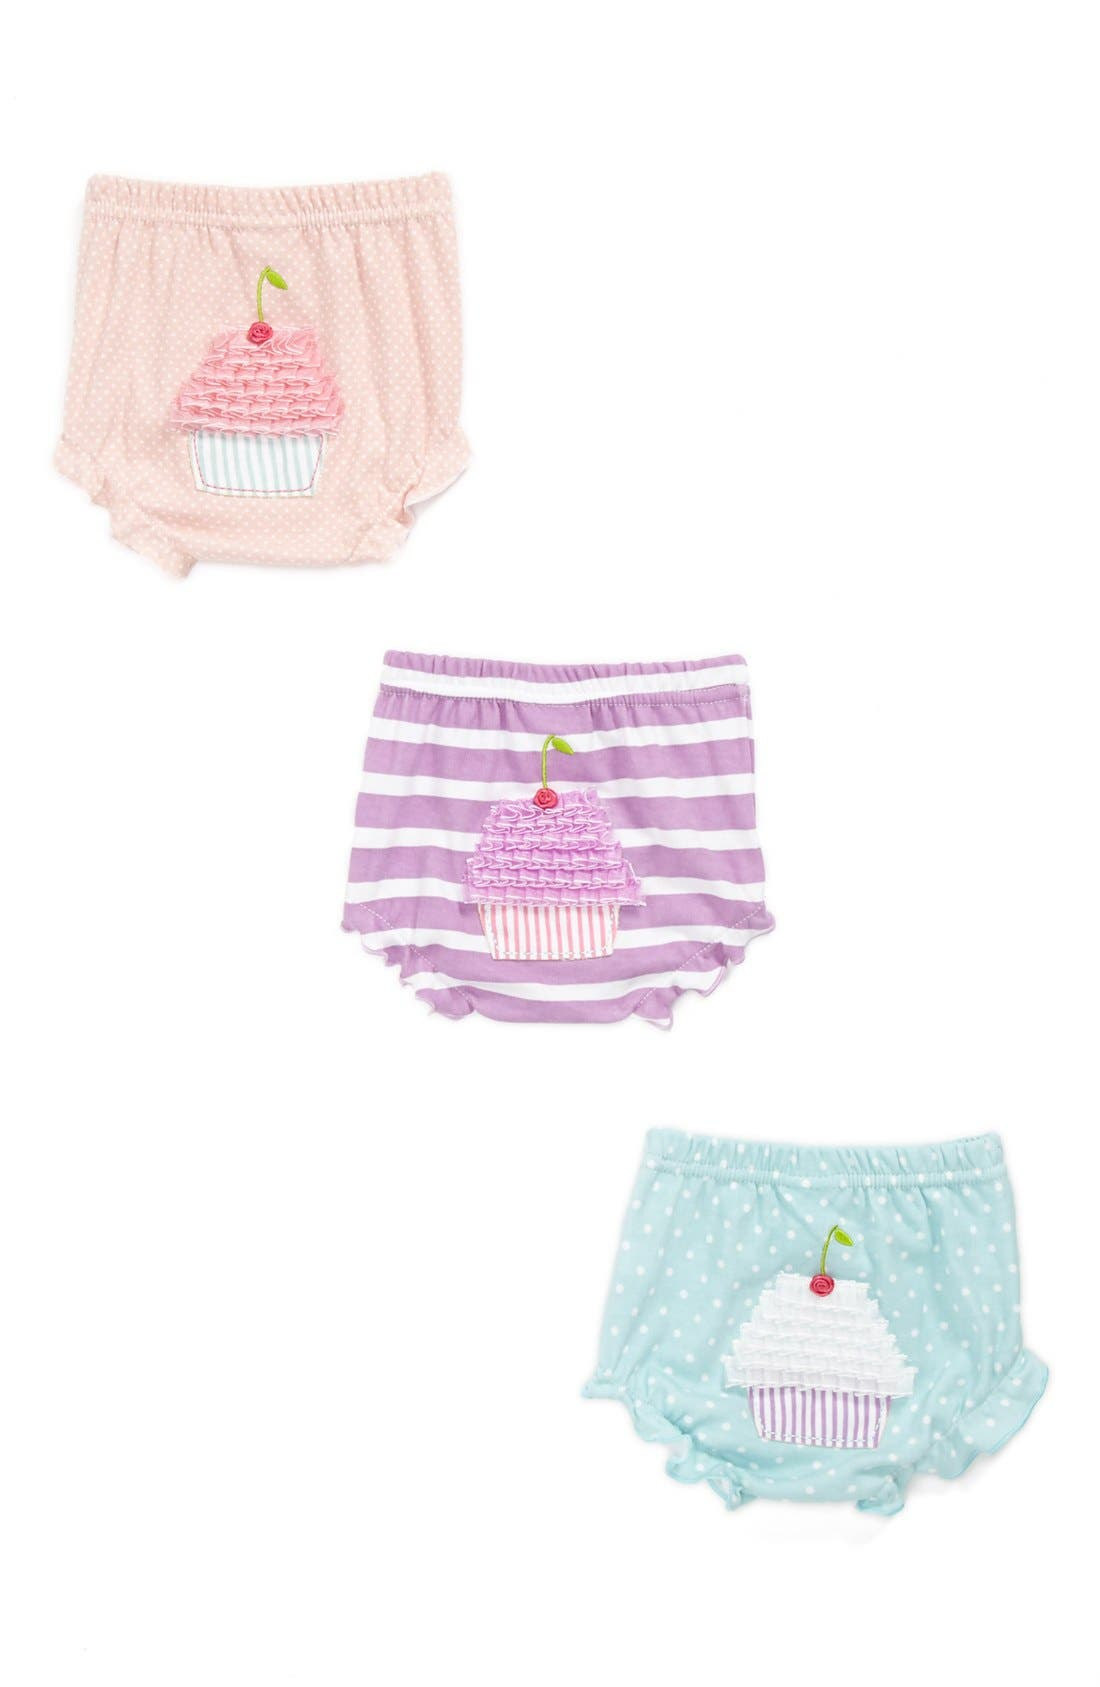 Alternate Image 1 Selected - Baby Aspen 'Baby Cakes' Bloomers (3-Pack) (Baby)